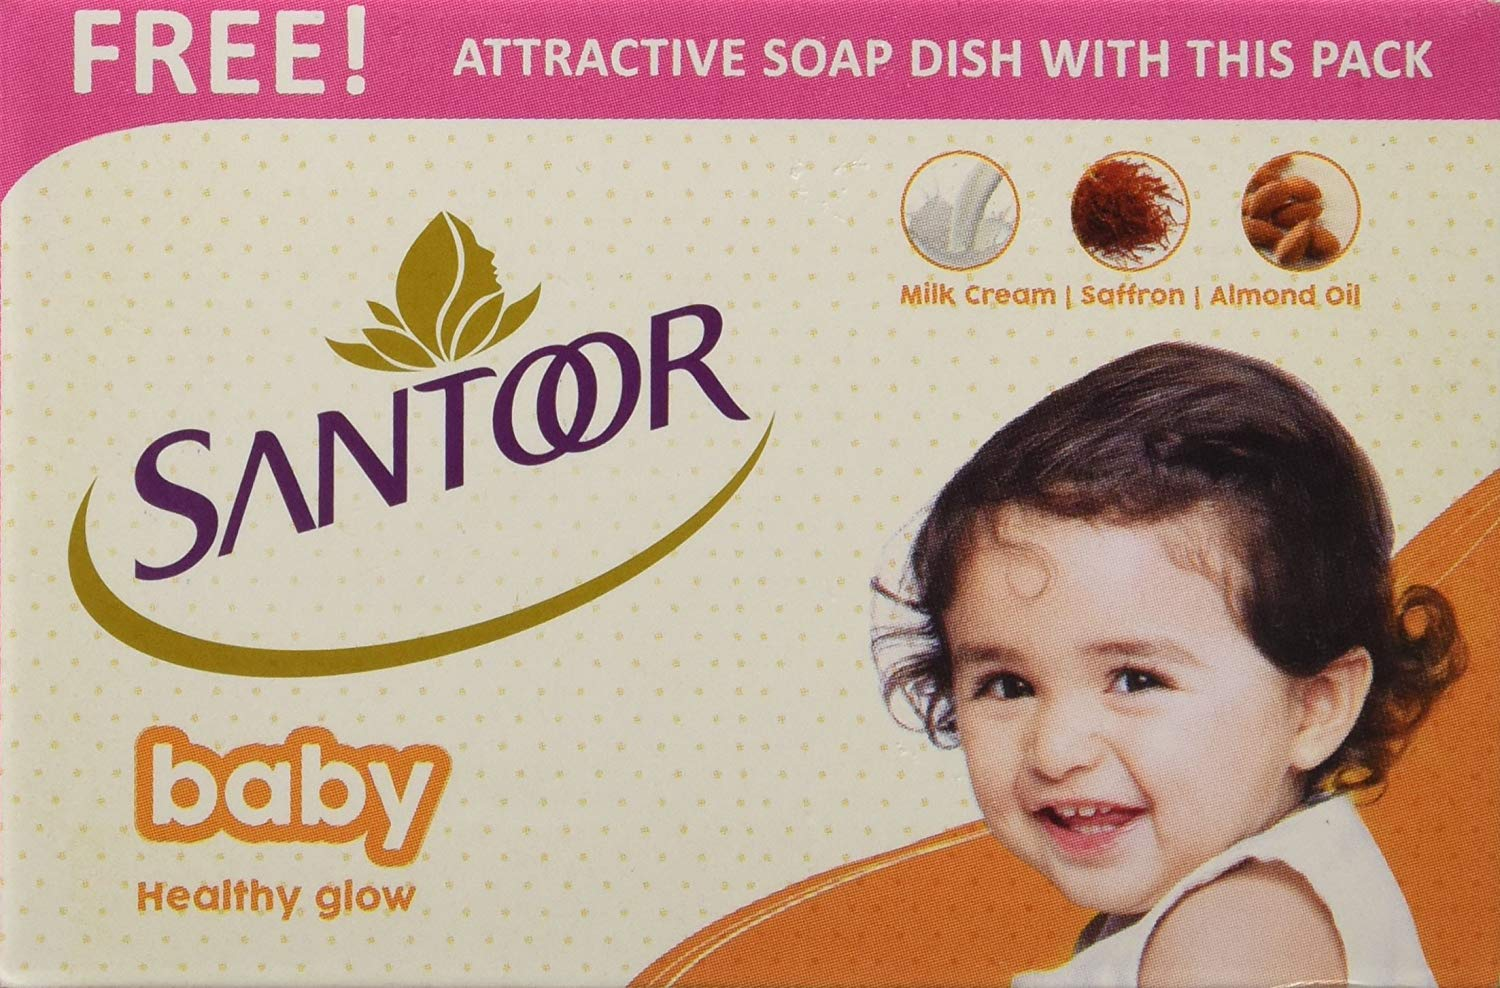 Santoor Baby Soap 75g Price, Uses, Side Effects, Composition - Apollo  Pharmacy